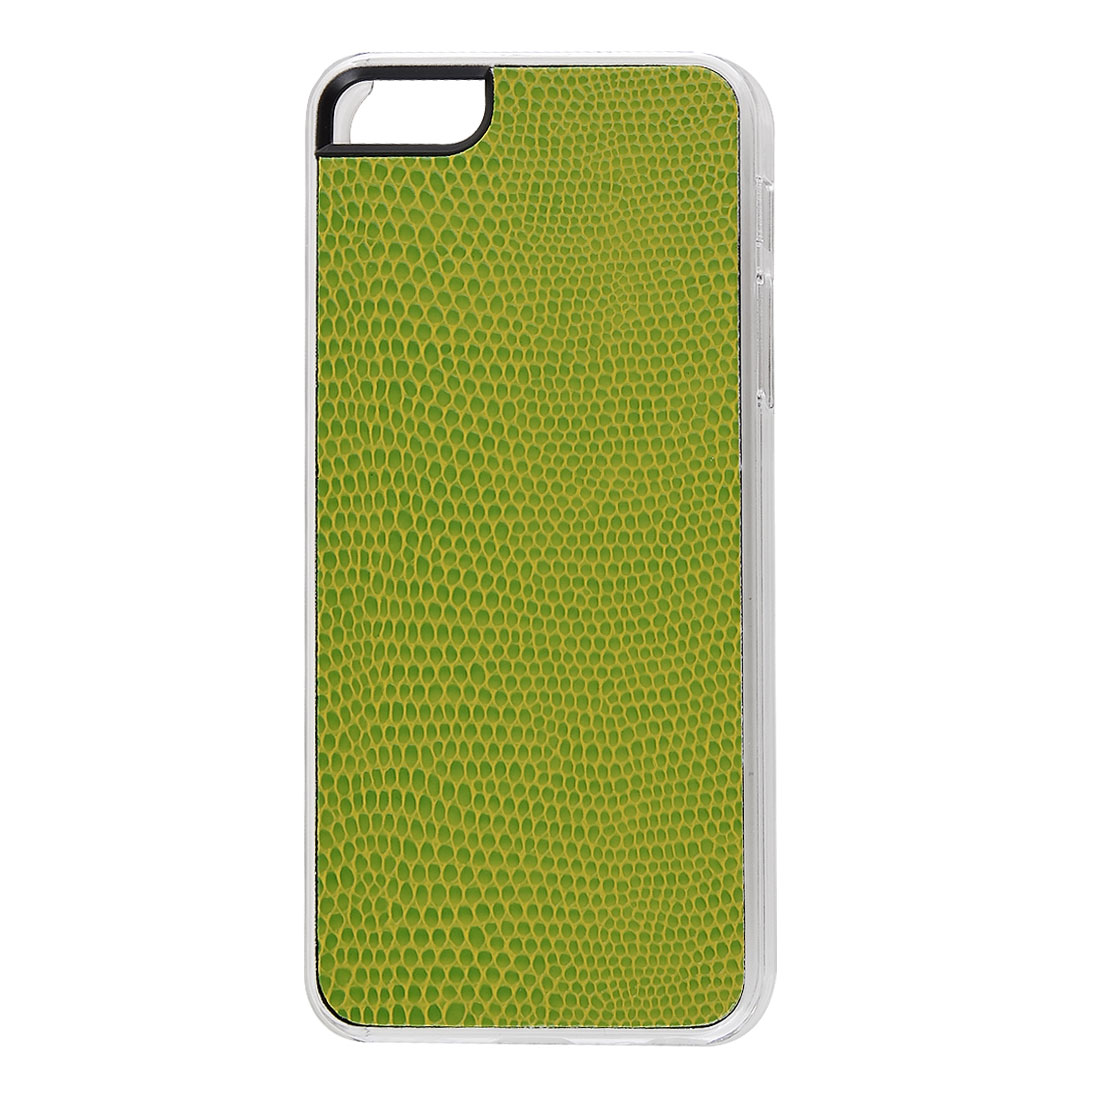 Light Green Faux Leather Snake Pattern Hard Back Case Cover Skin for Apple iPhone 5 5G